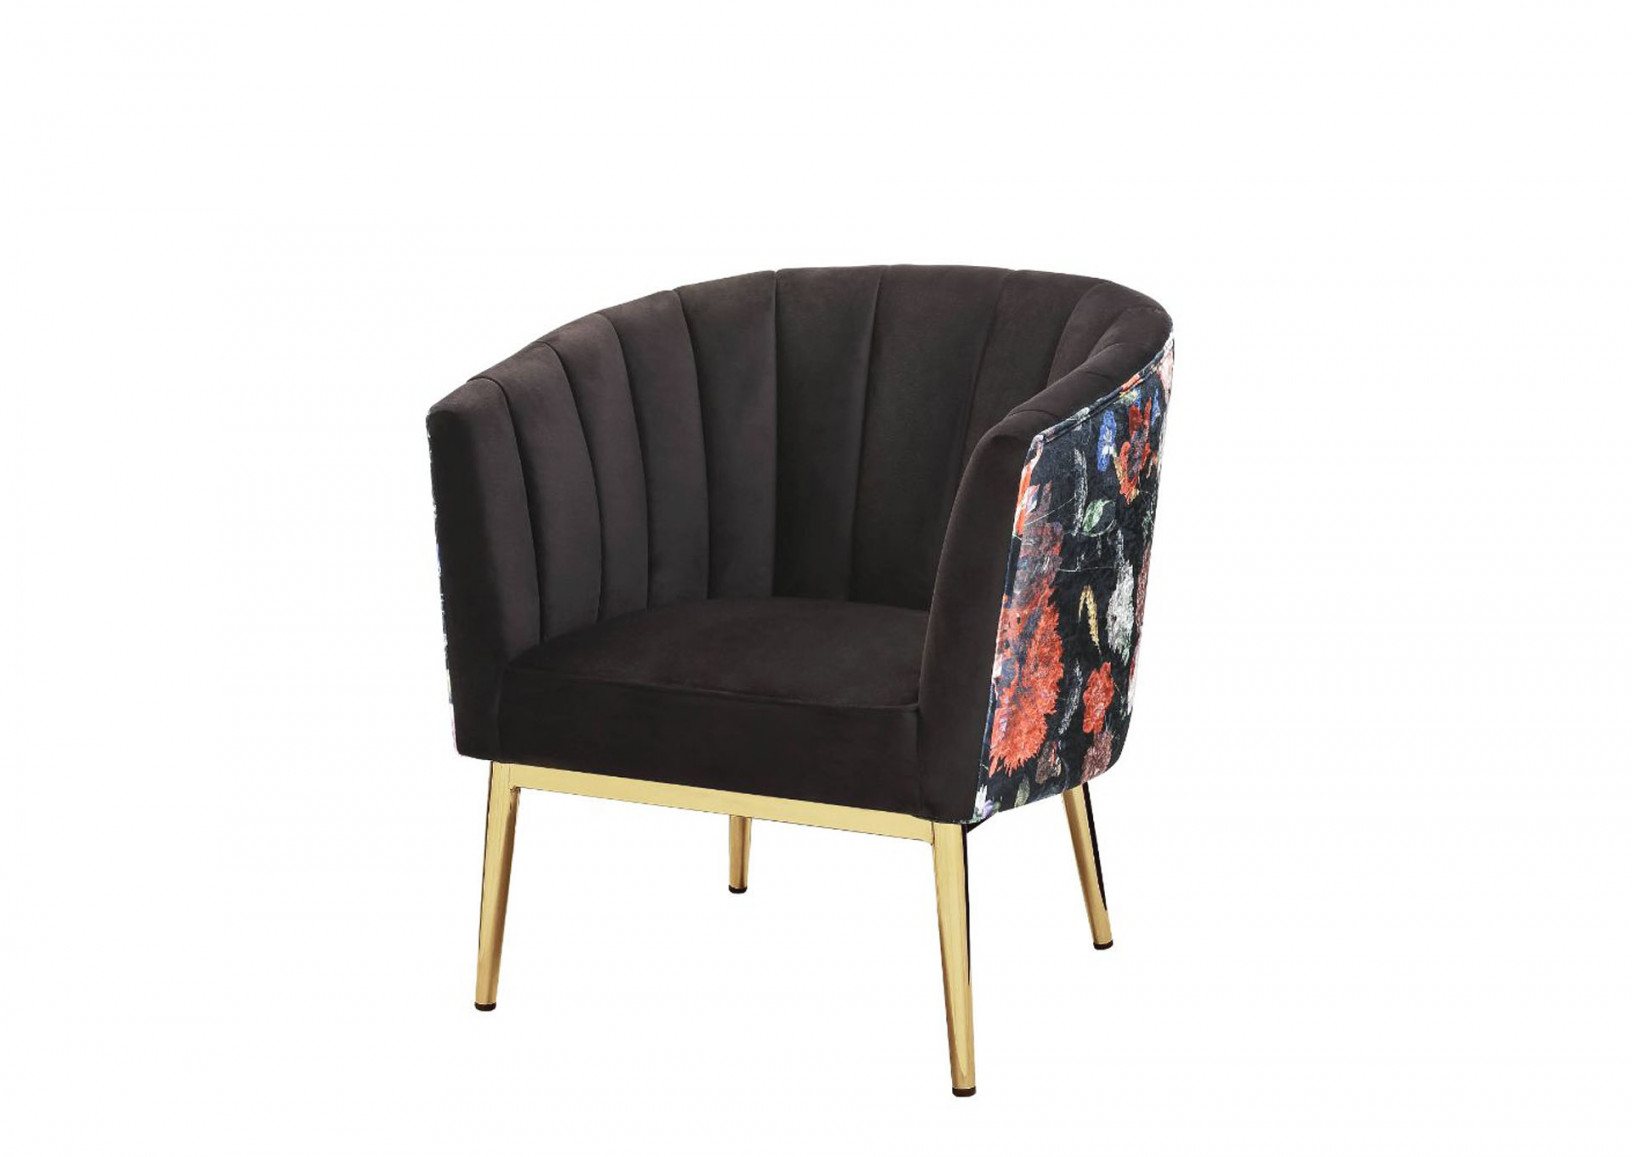 Colla Gray/Gold Accent Chair 5Th Avenue Furniture - Mi within Grey And Gold Living Room